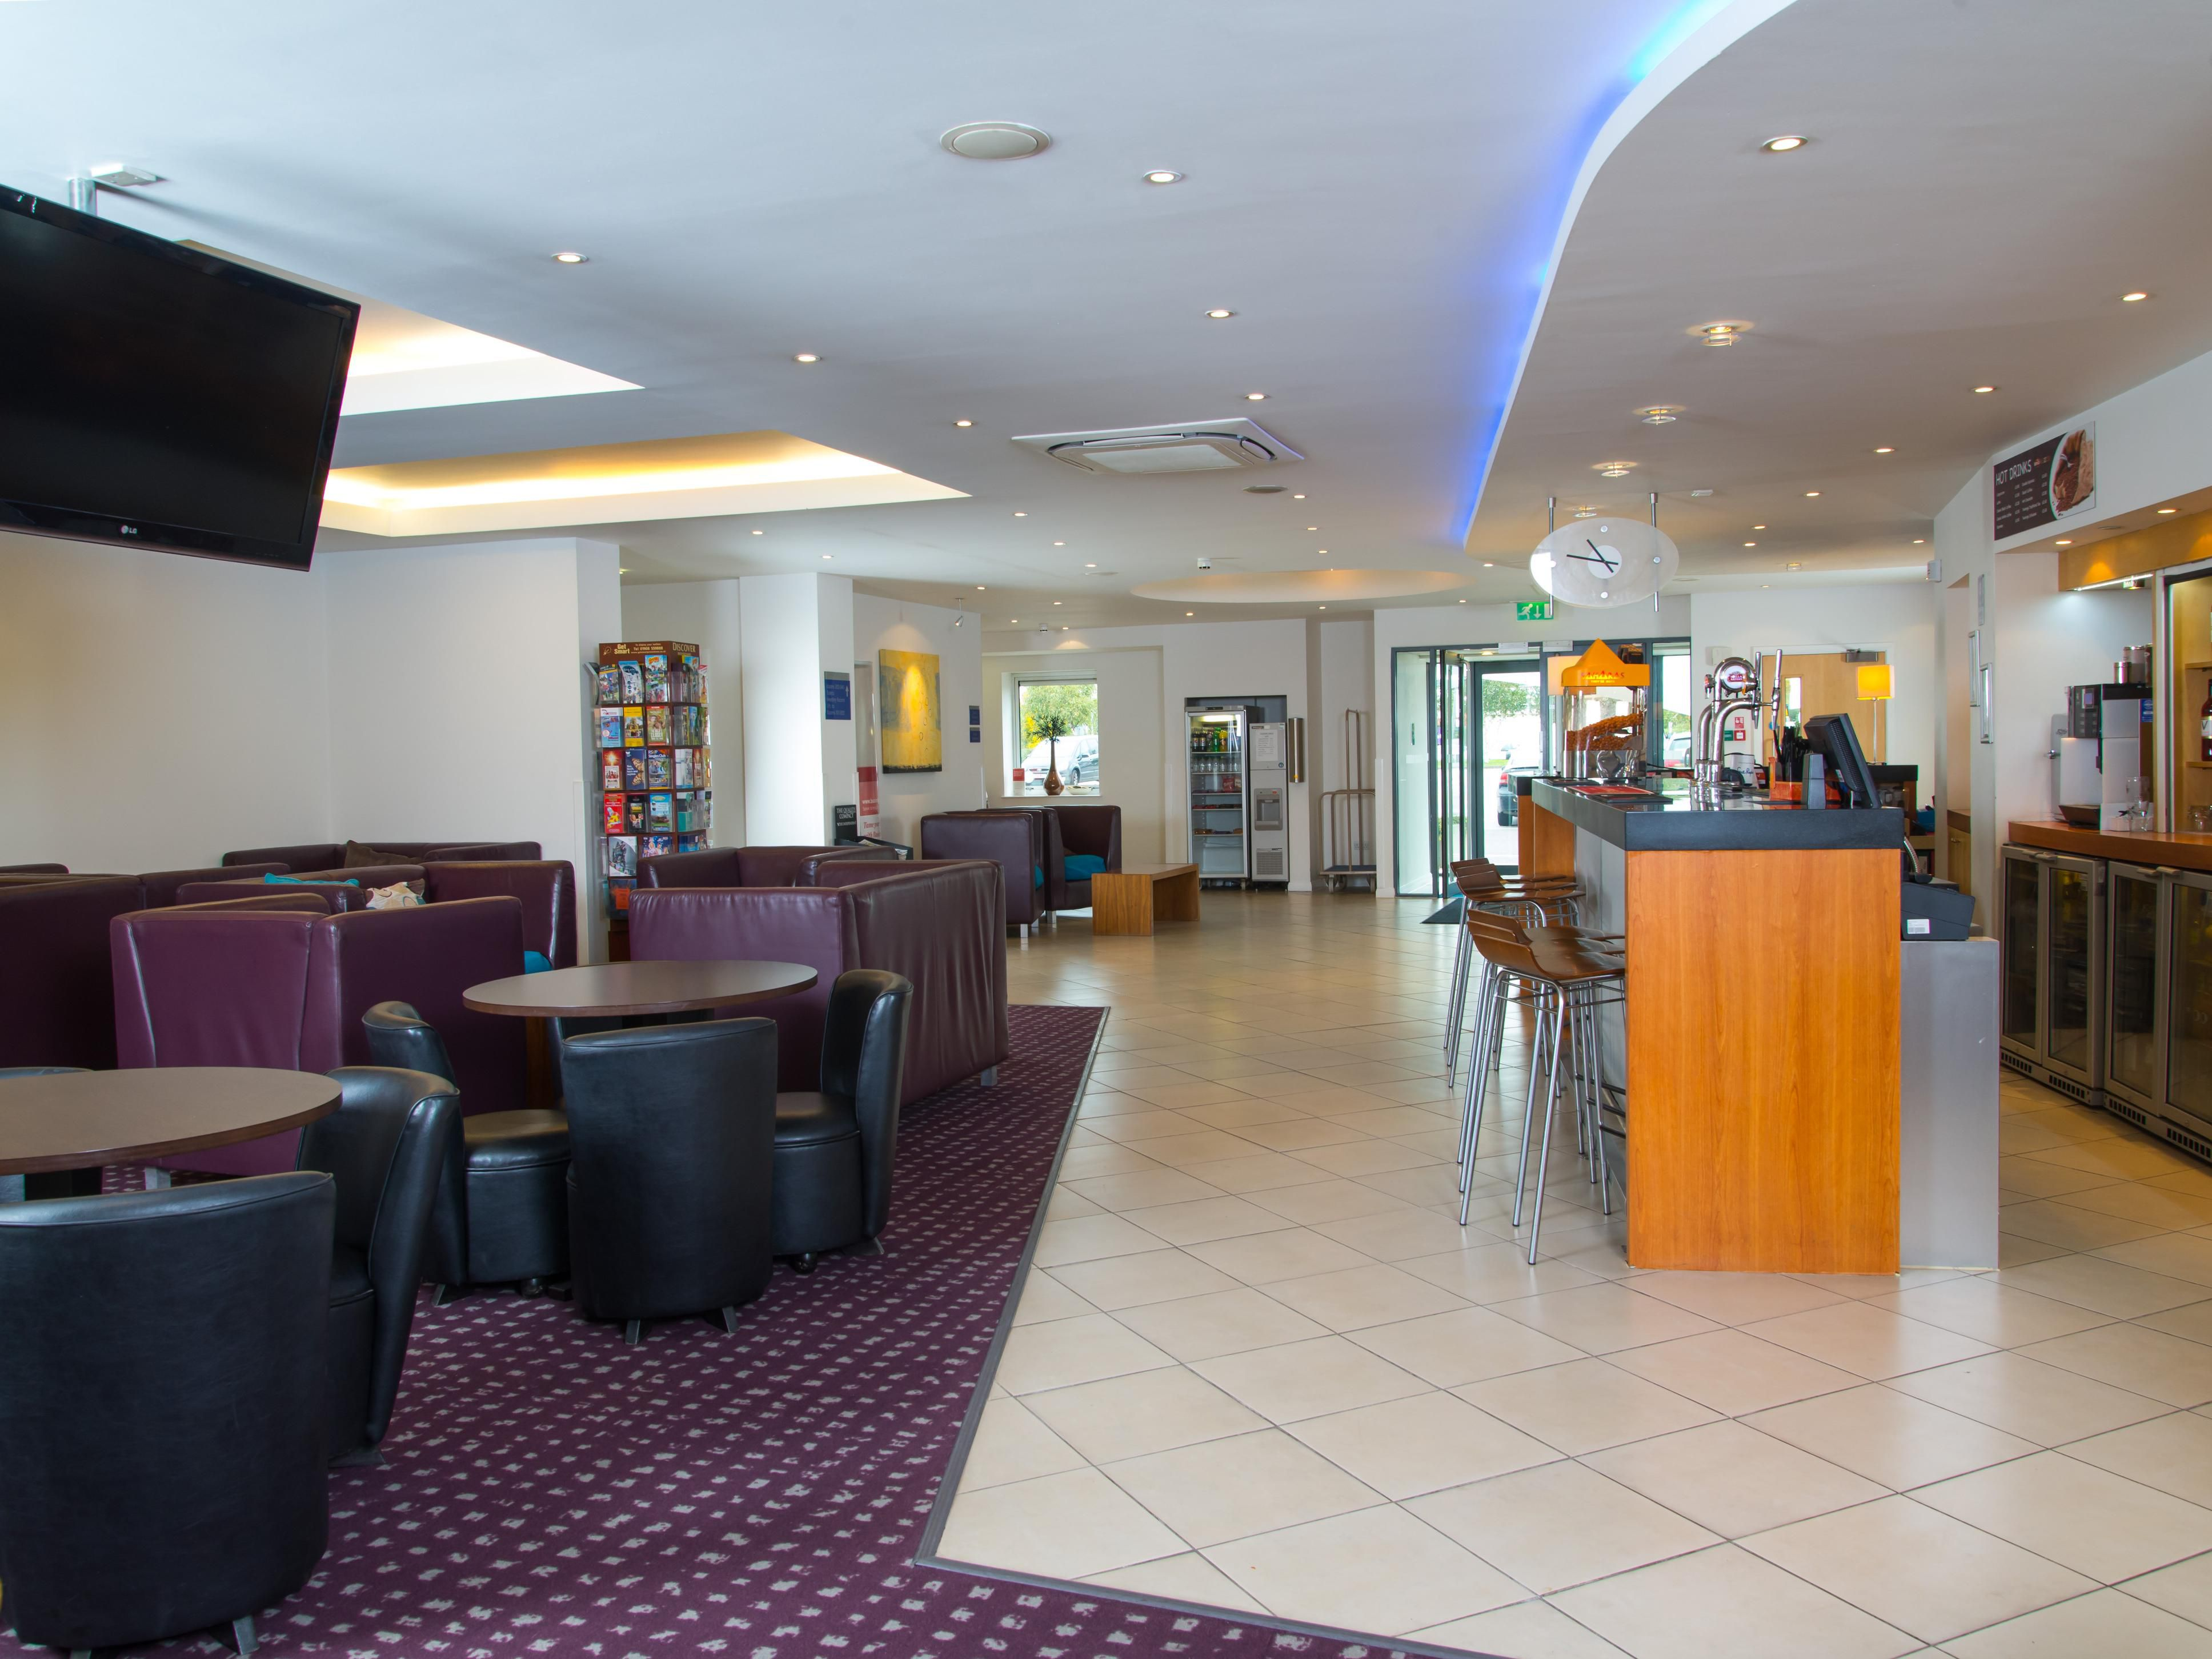 Catch up with the latest news on our widescreen TVs in our lobby